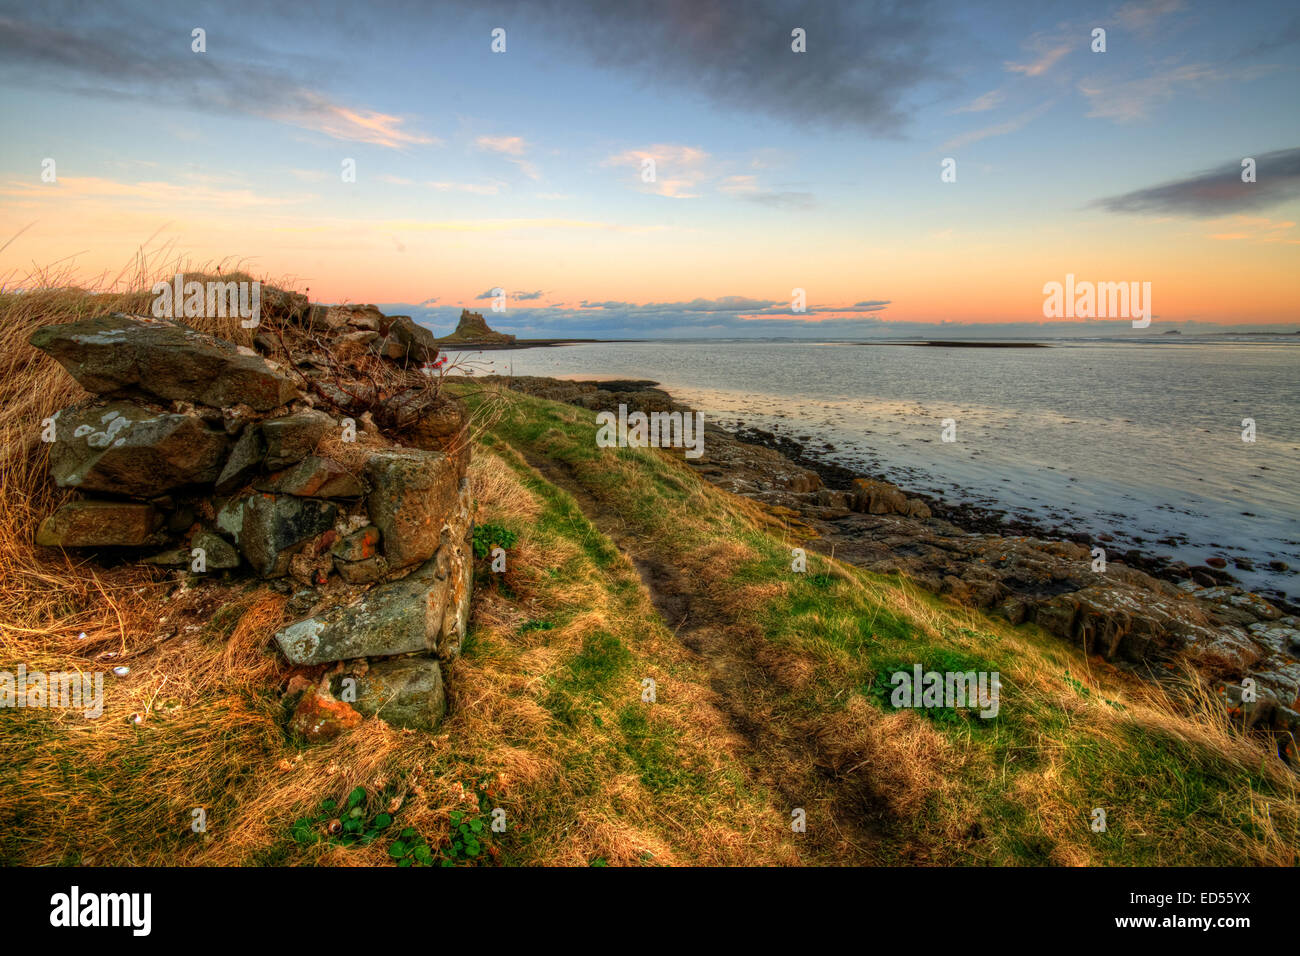 The views to Lindisfarne Castle at dusk on the Northumberland coast. Stock Photo